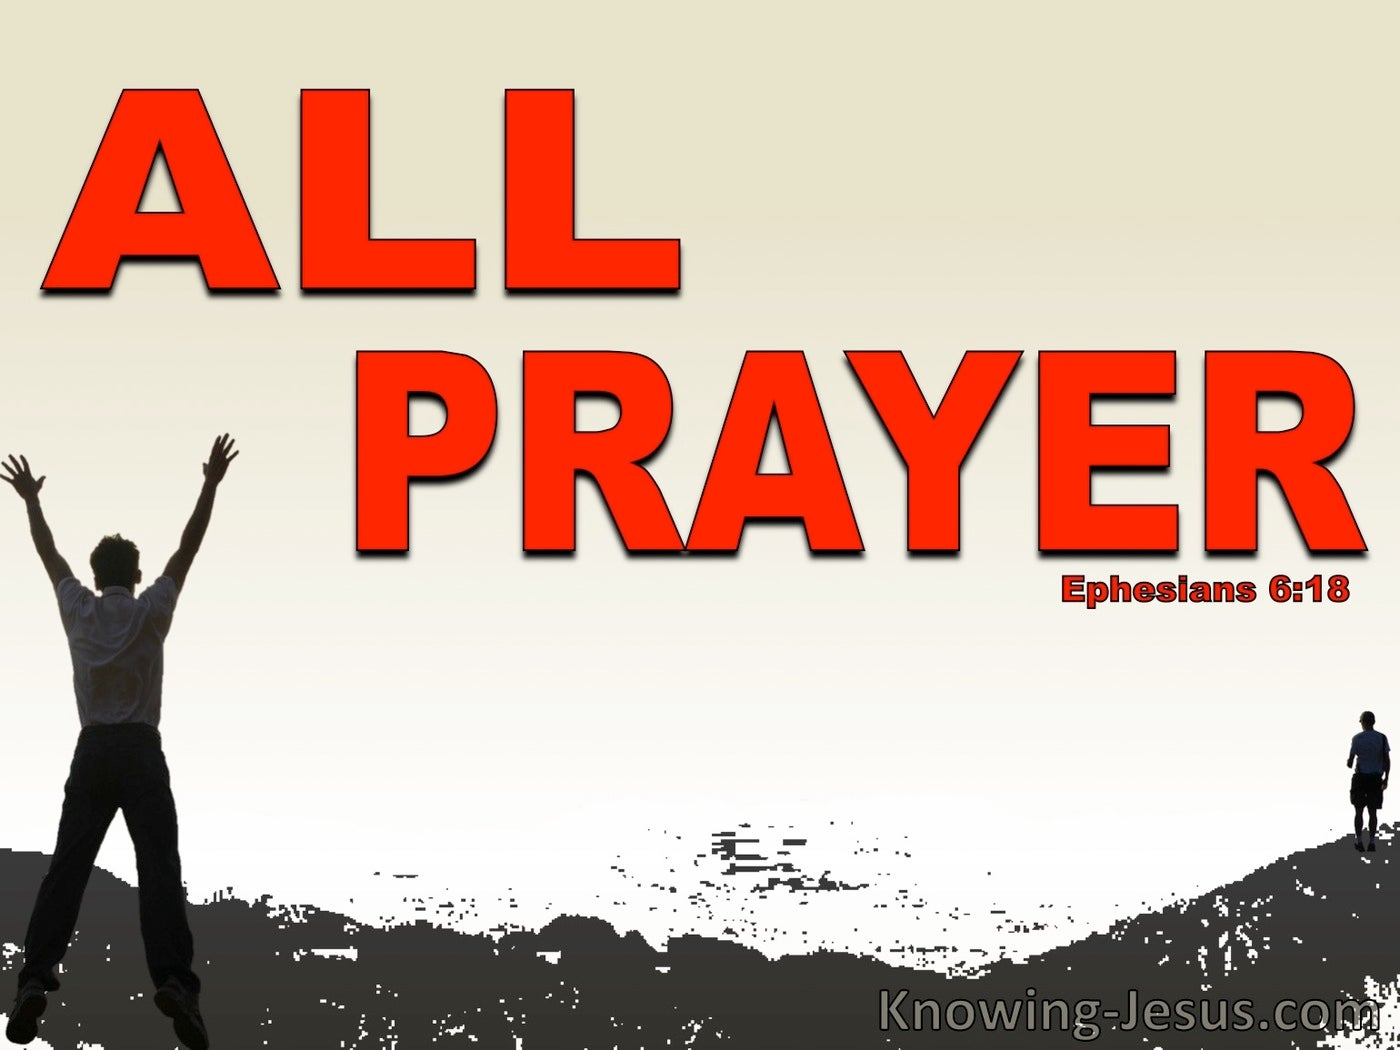 All Prayer (devotional) (red) - Ephesians 6:18